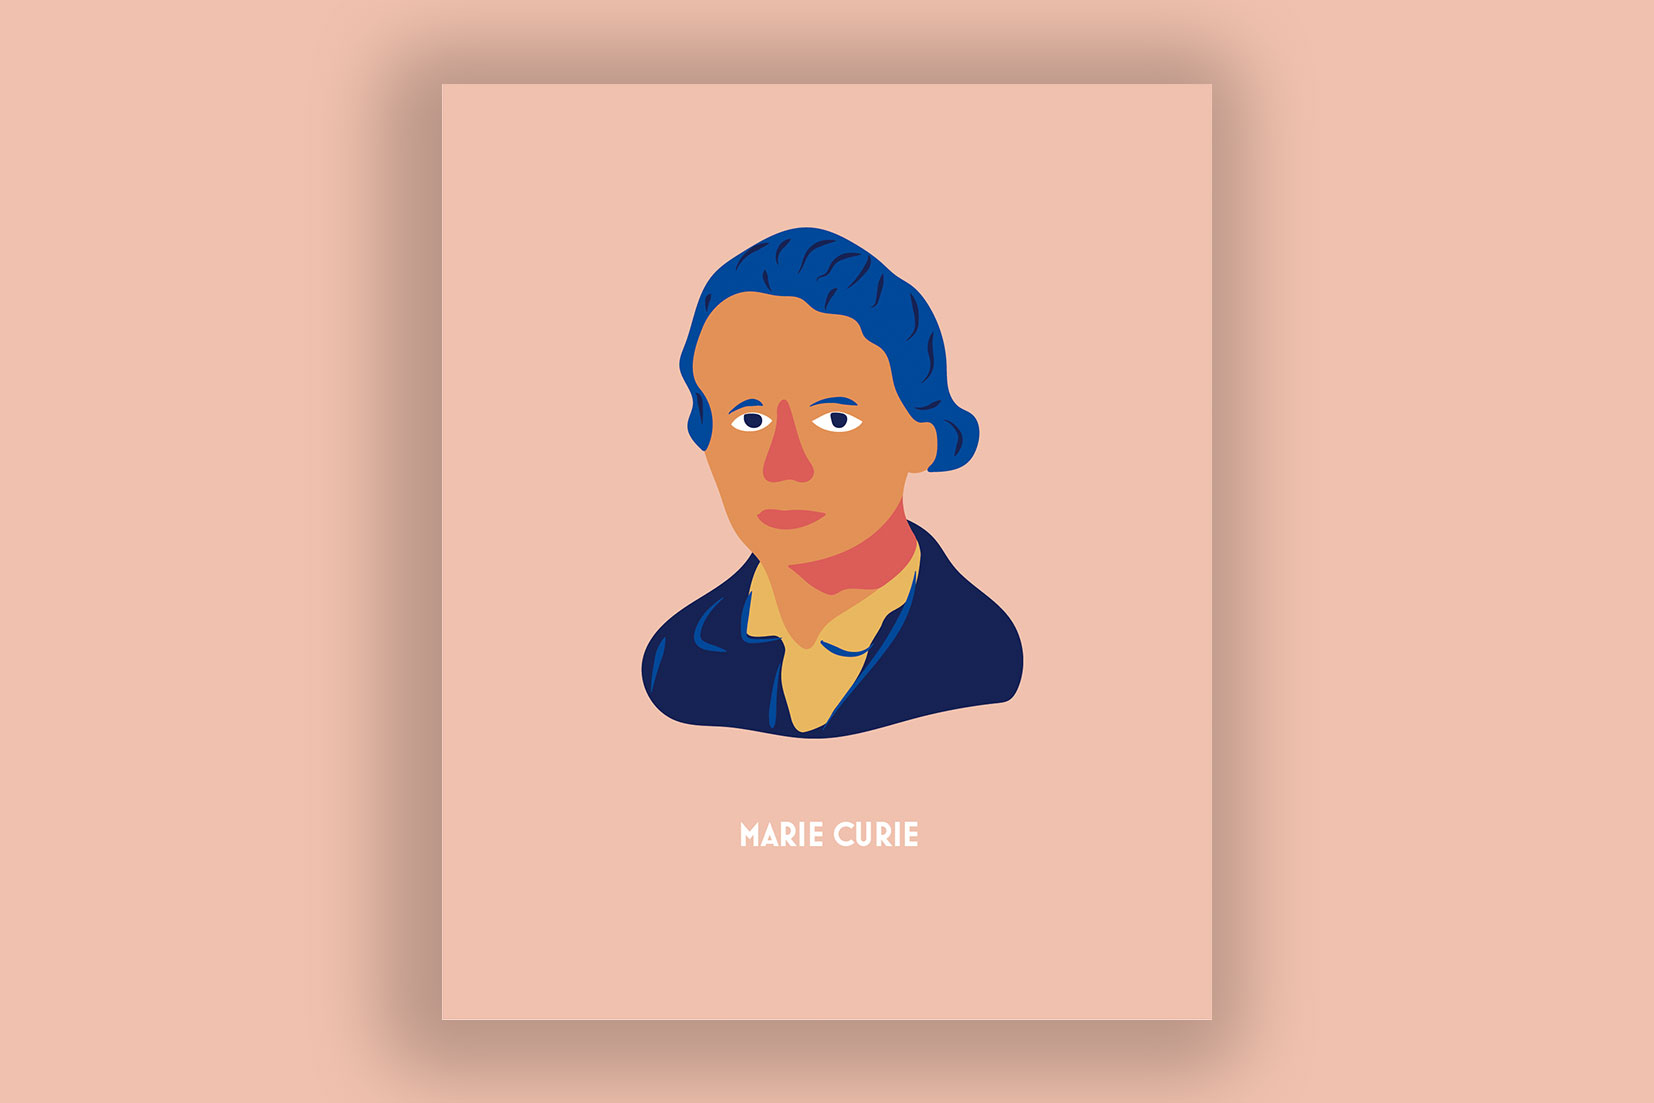 mujeres influyentes - Marie Curie